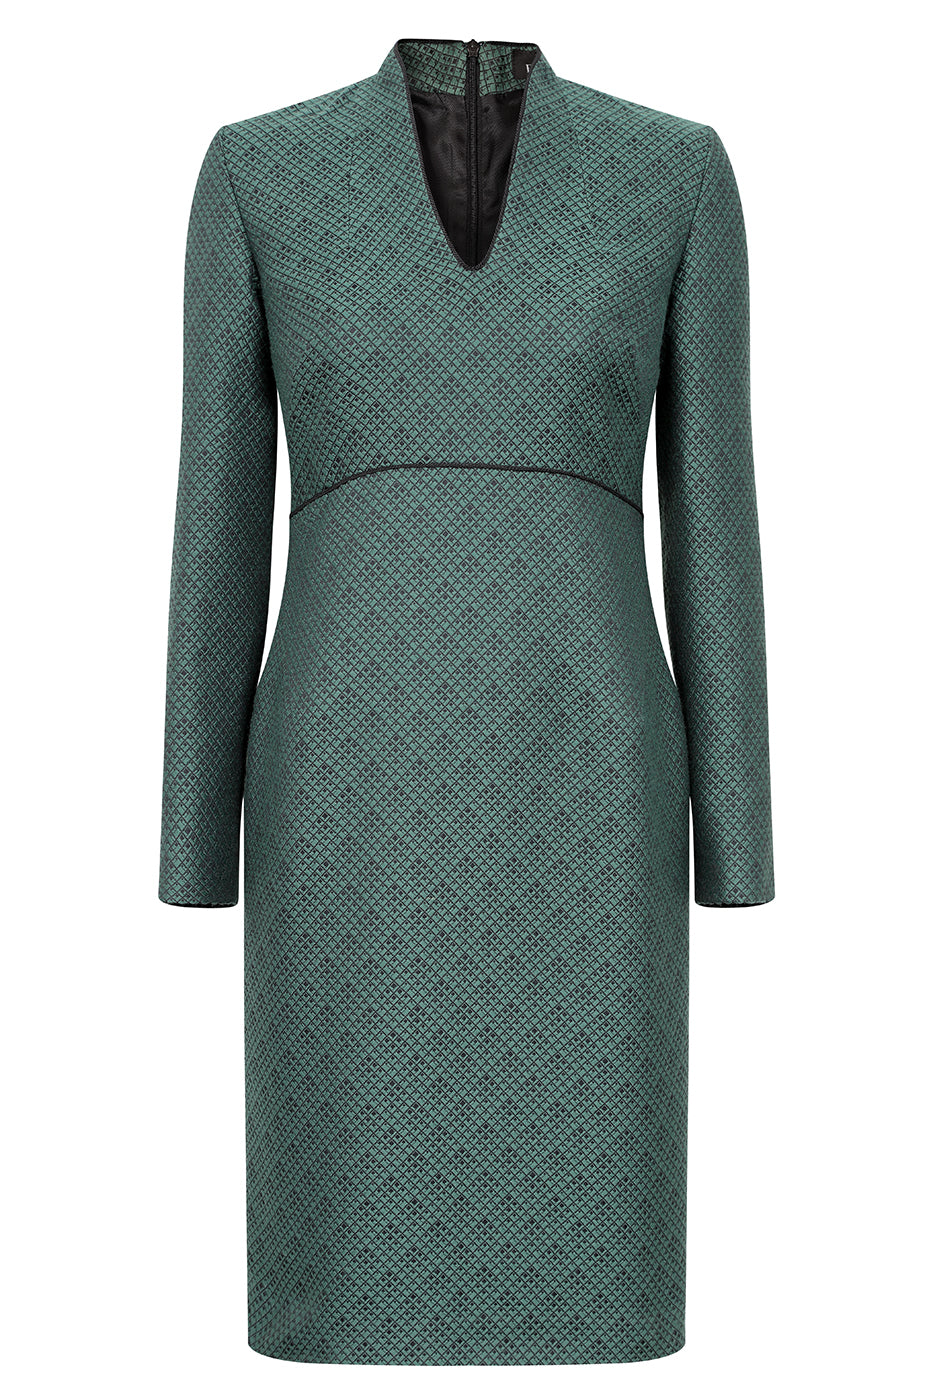 Green dress with matching jacket for weddings